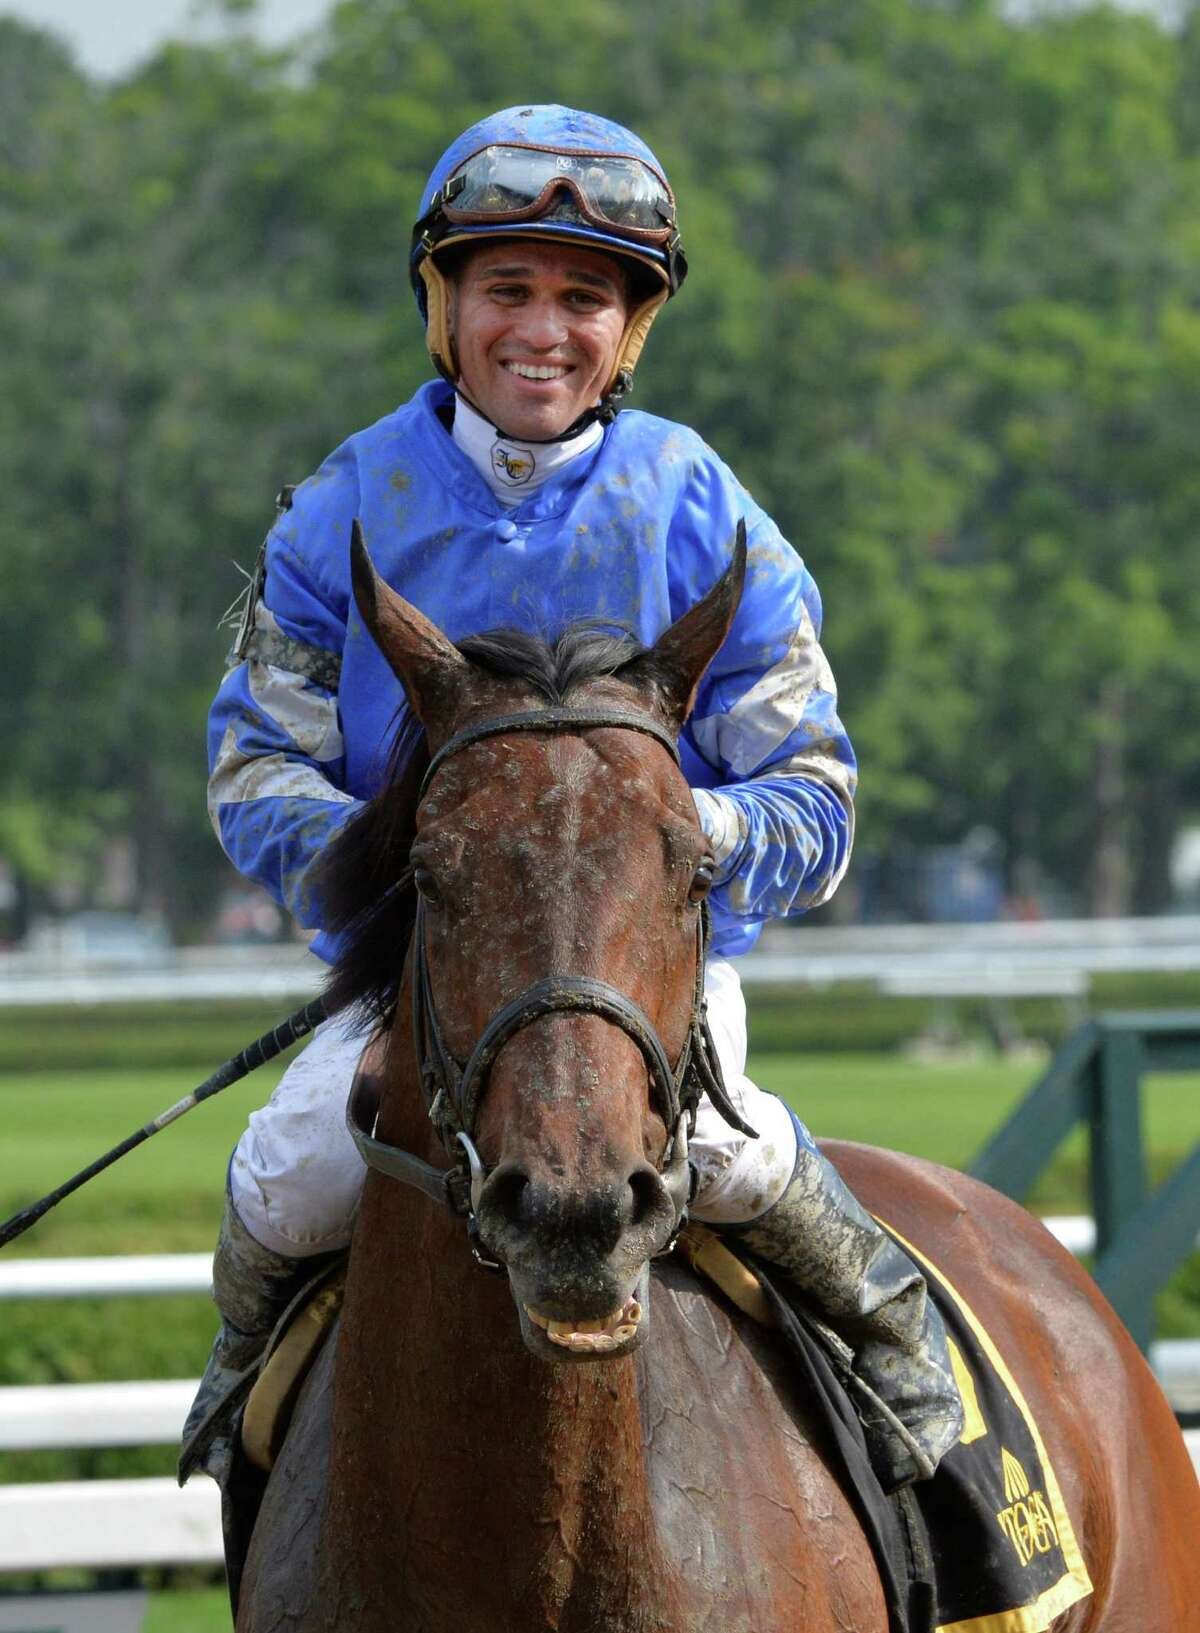 Jockey Javier Castellano is all smiles as he sits atop Better Lucky after winning the Shine On Stakes Monday afternoon July 21, 2014 at the Saratoga Race Course in Saratoga Springs, N.Y. (Skip Dickstein / Times Union)